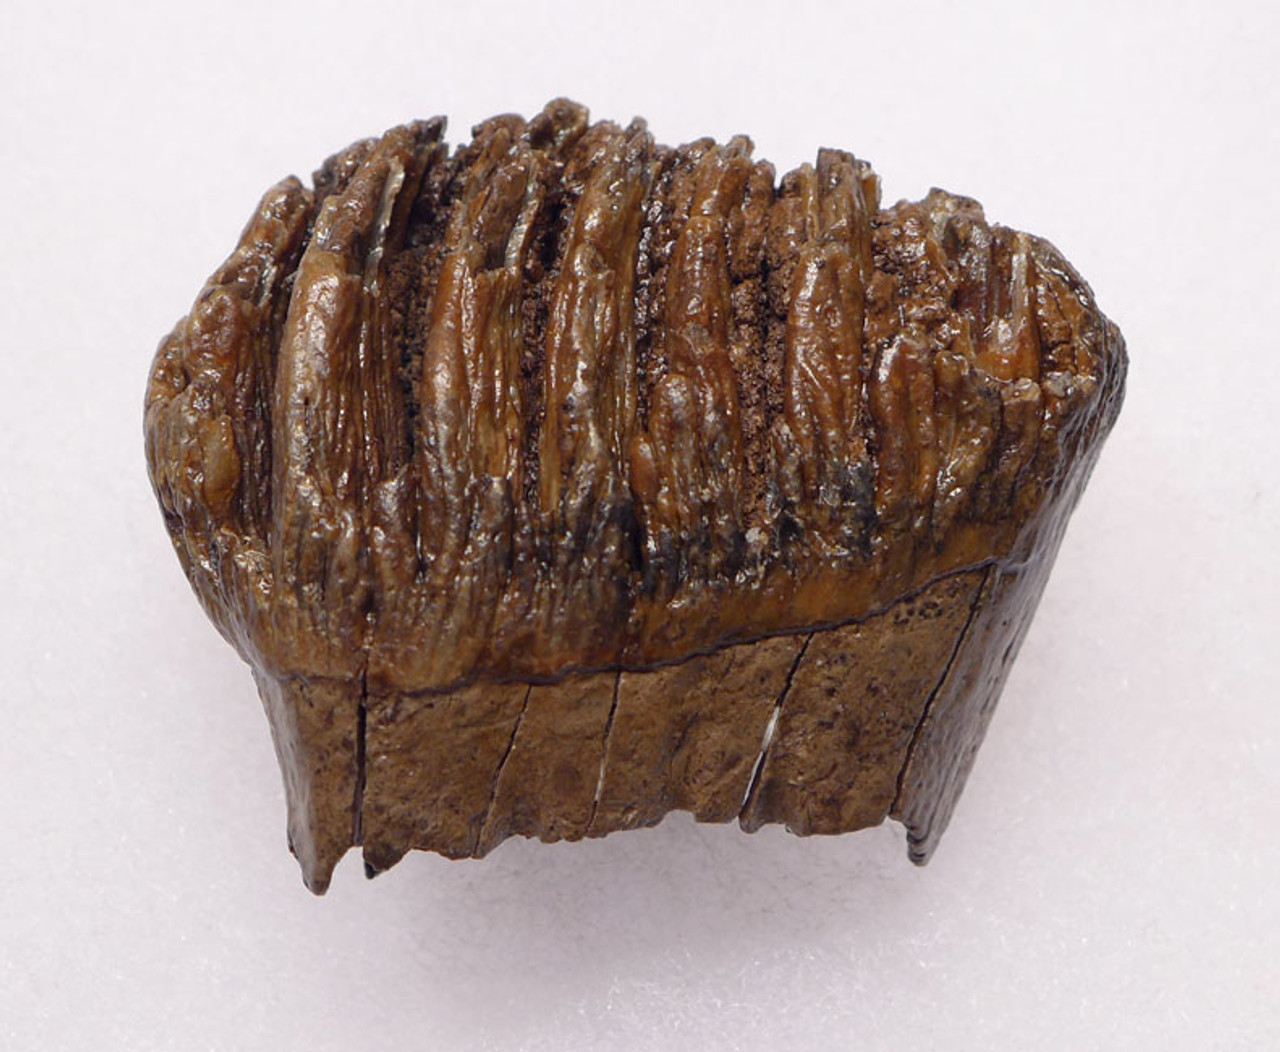 MTB002 - EXTREMELY RARE BABY CALF SOUTHERN MERIDIONALIS MAMMOTH TOOTH FROM EUROPE